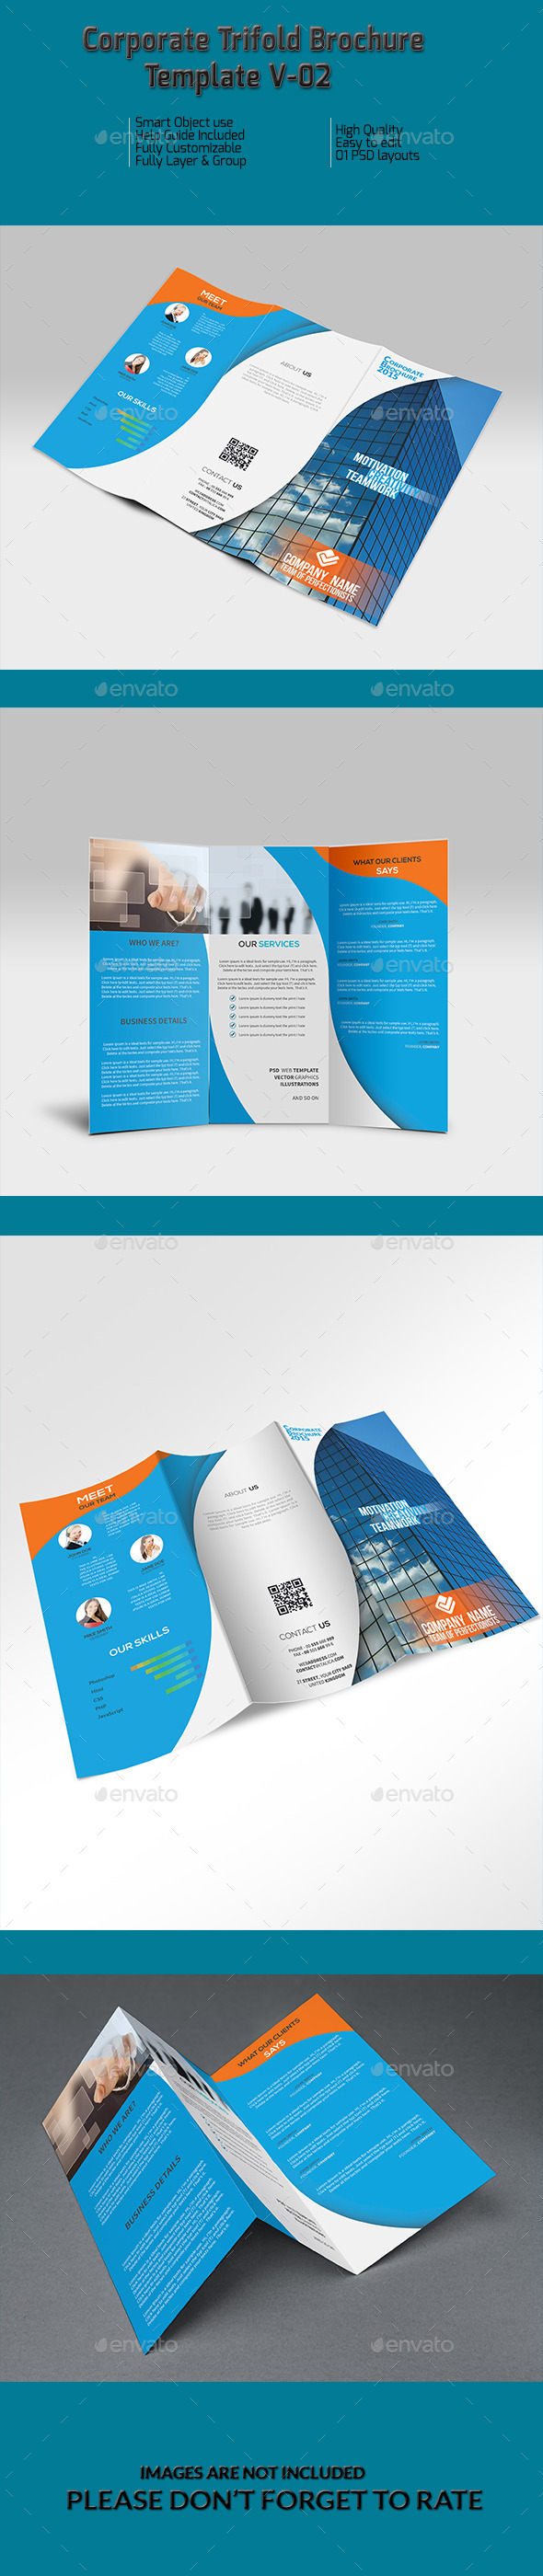 Corporate Trifold Brochure Template V-02 - Corporate Brochures